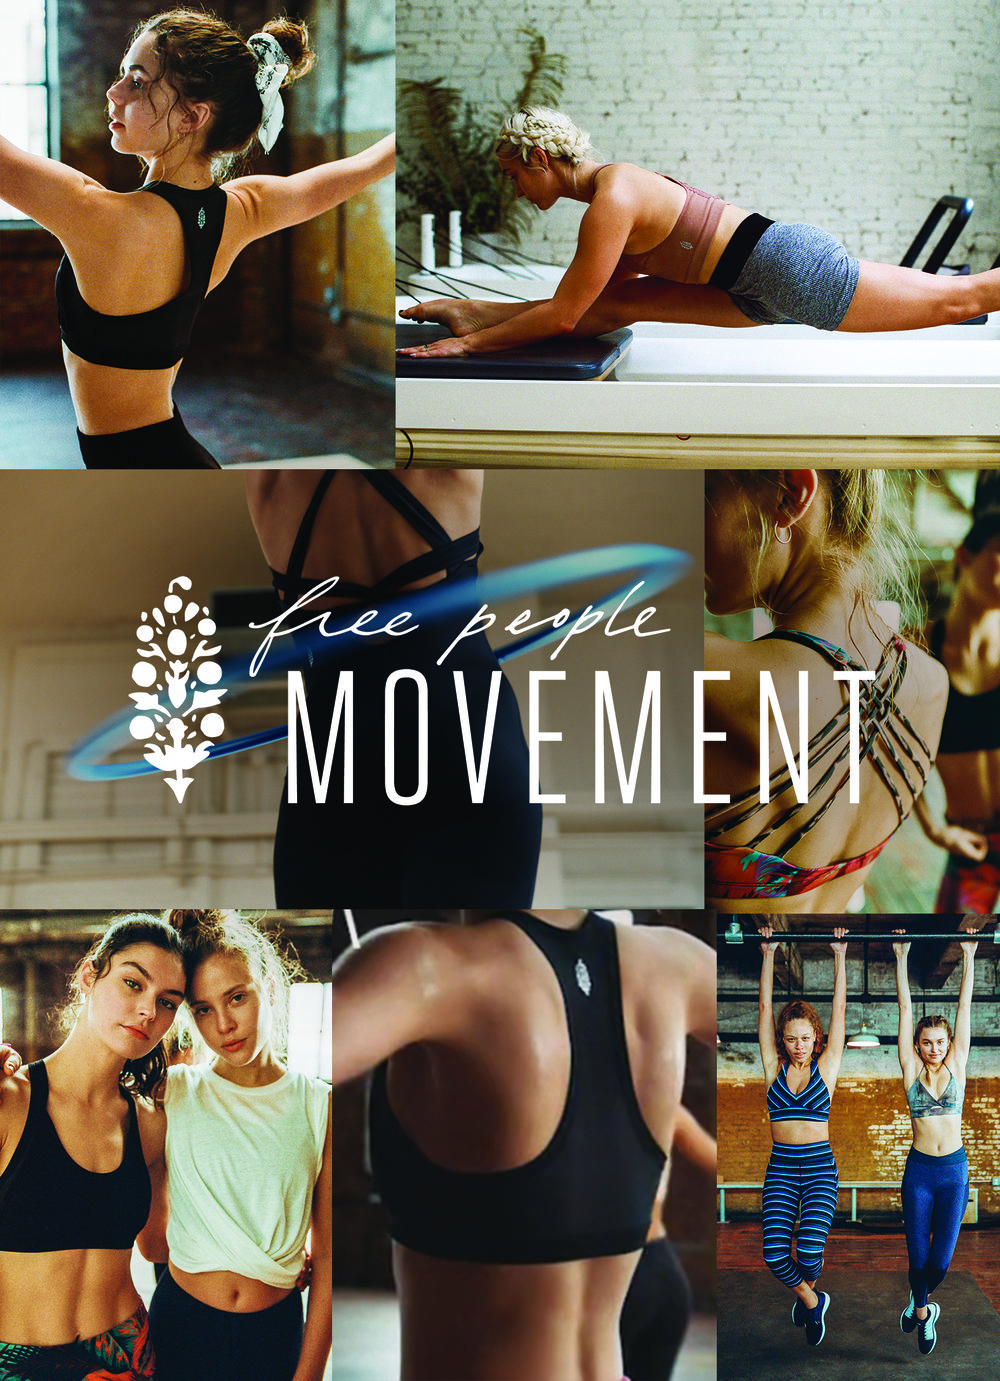 meditate and move @ FREE PEOPLE - last class of 2018!NOVEMBER 11th at 10amcharlottefpmovementevent.splashthat.com/withCariannaLynne